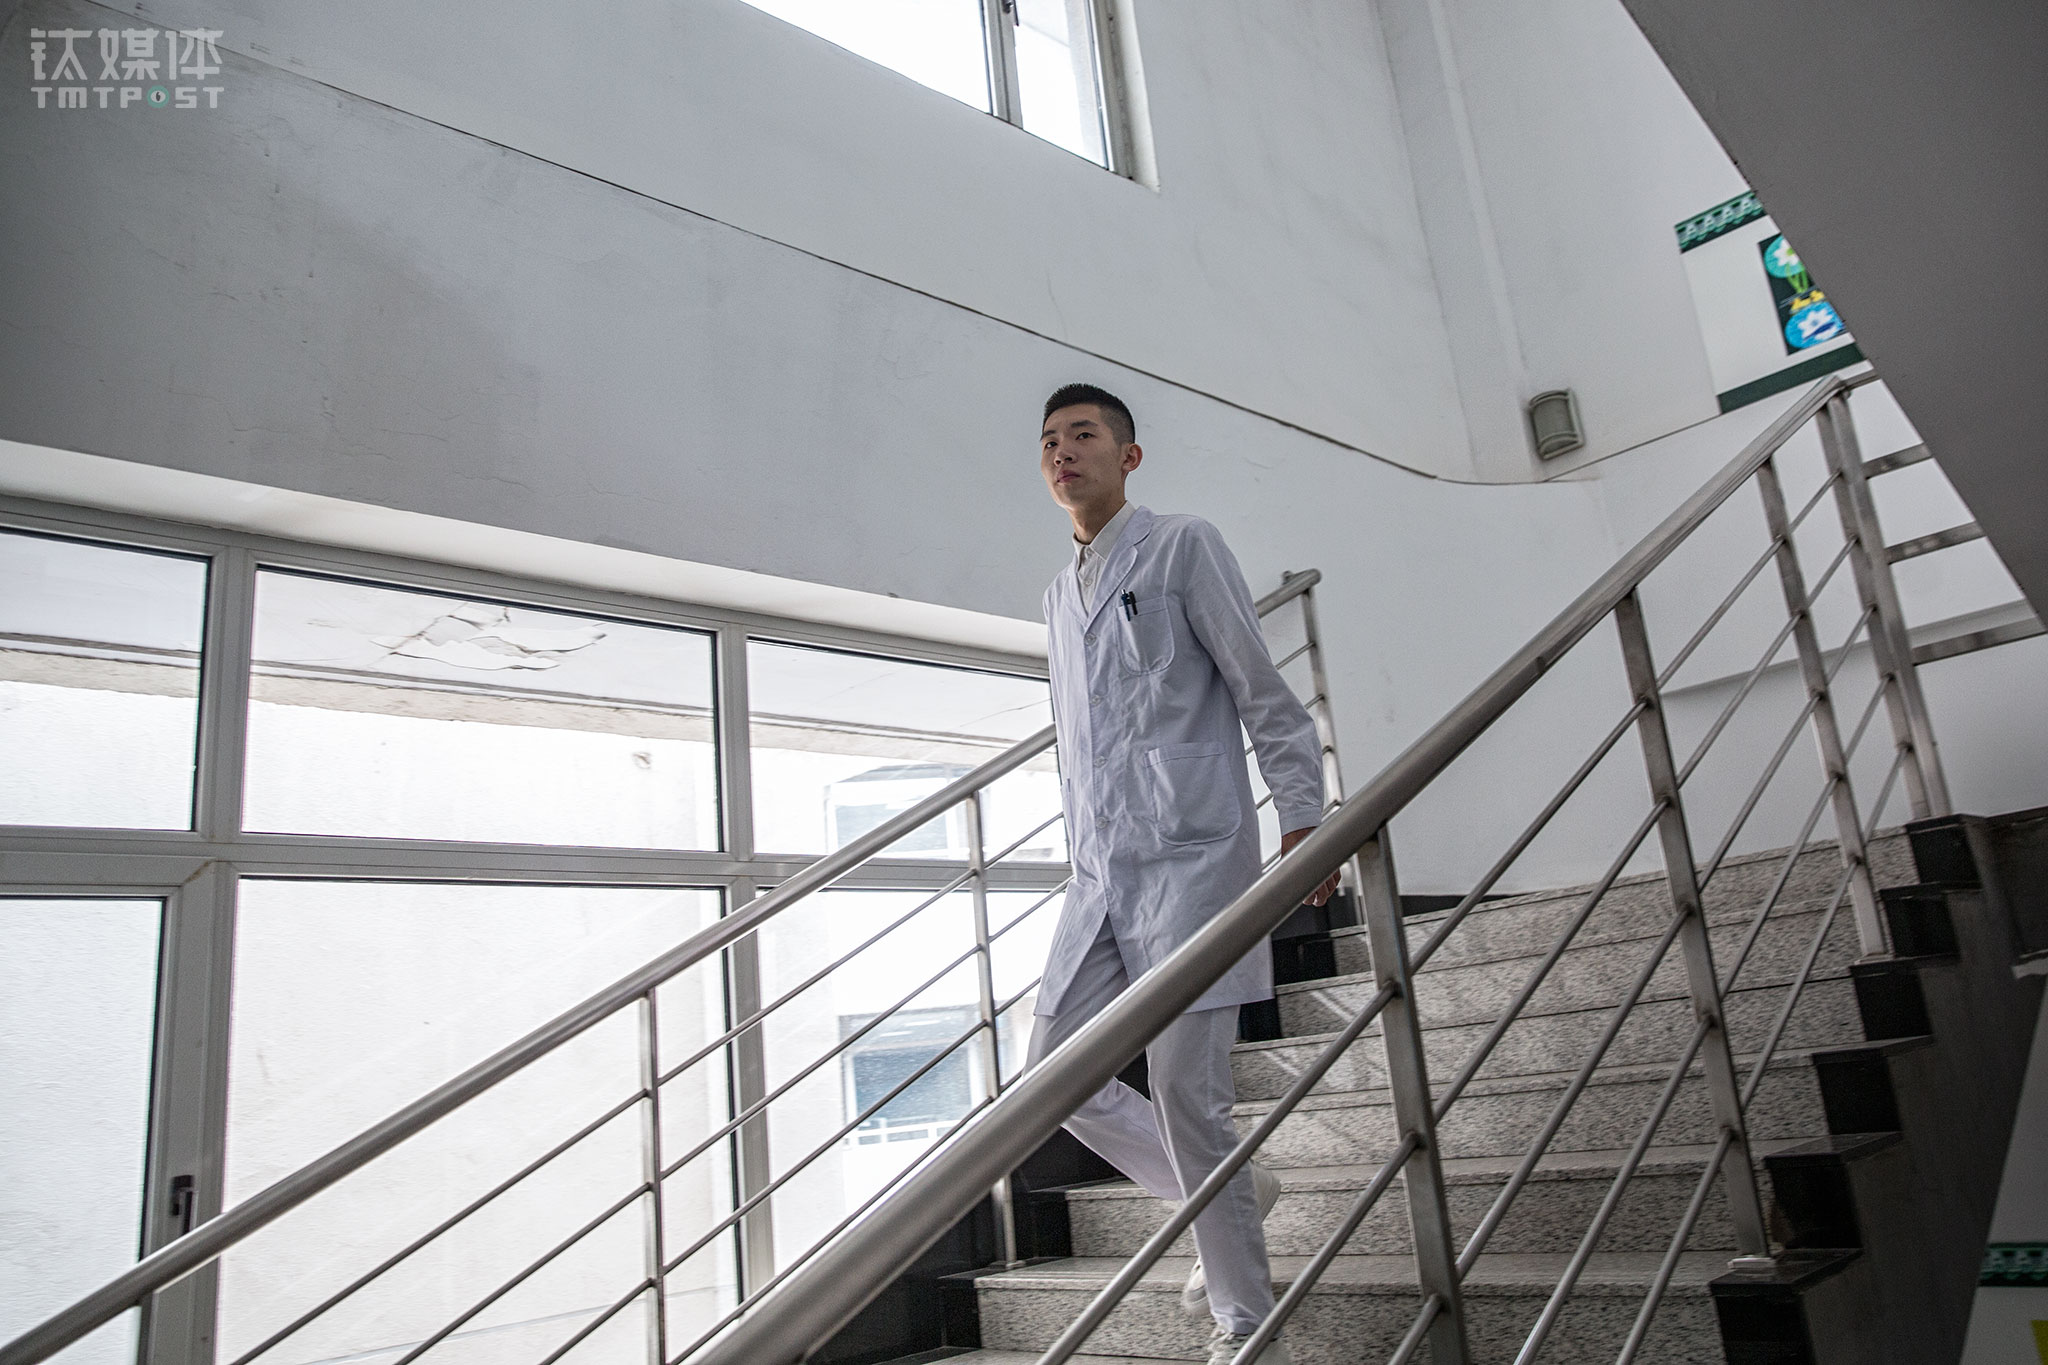 The 19-year-old Hao Kun comes from Heilongjiang province, a Northeastern region in China bordering Russia. Now he works seven to five every day at a hospital in Tianjin city as an intern nurse, responsible for cleaning the hospital beds, performing an injection, and applying medicine to the patients.